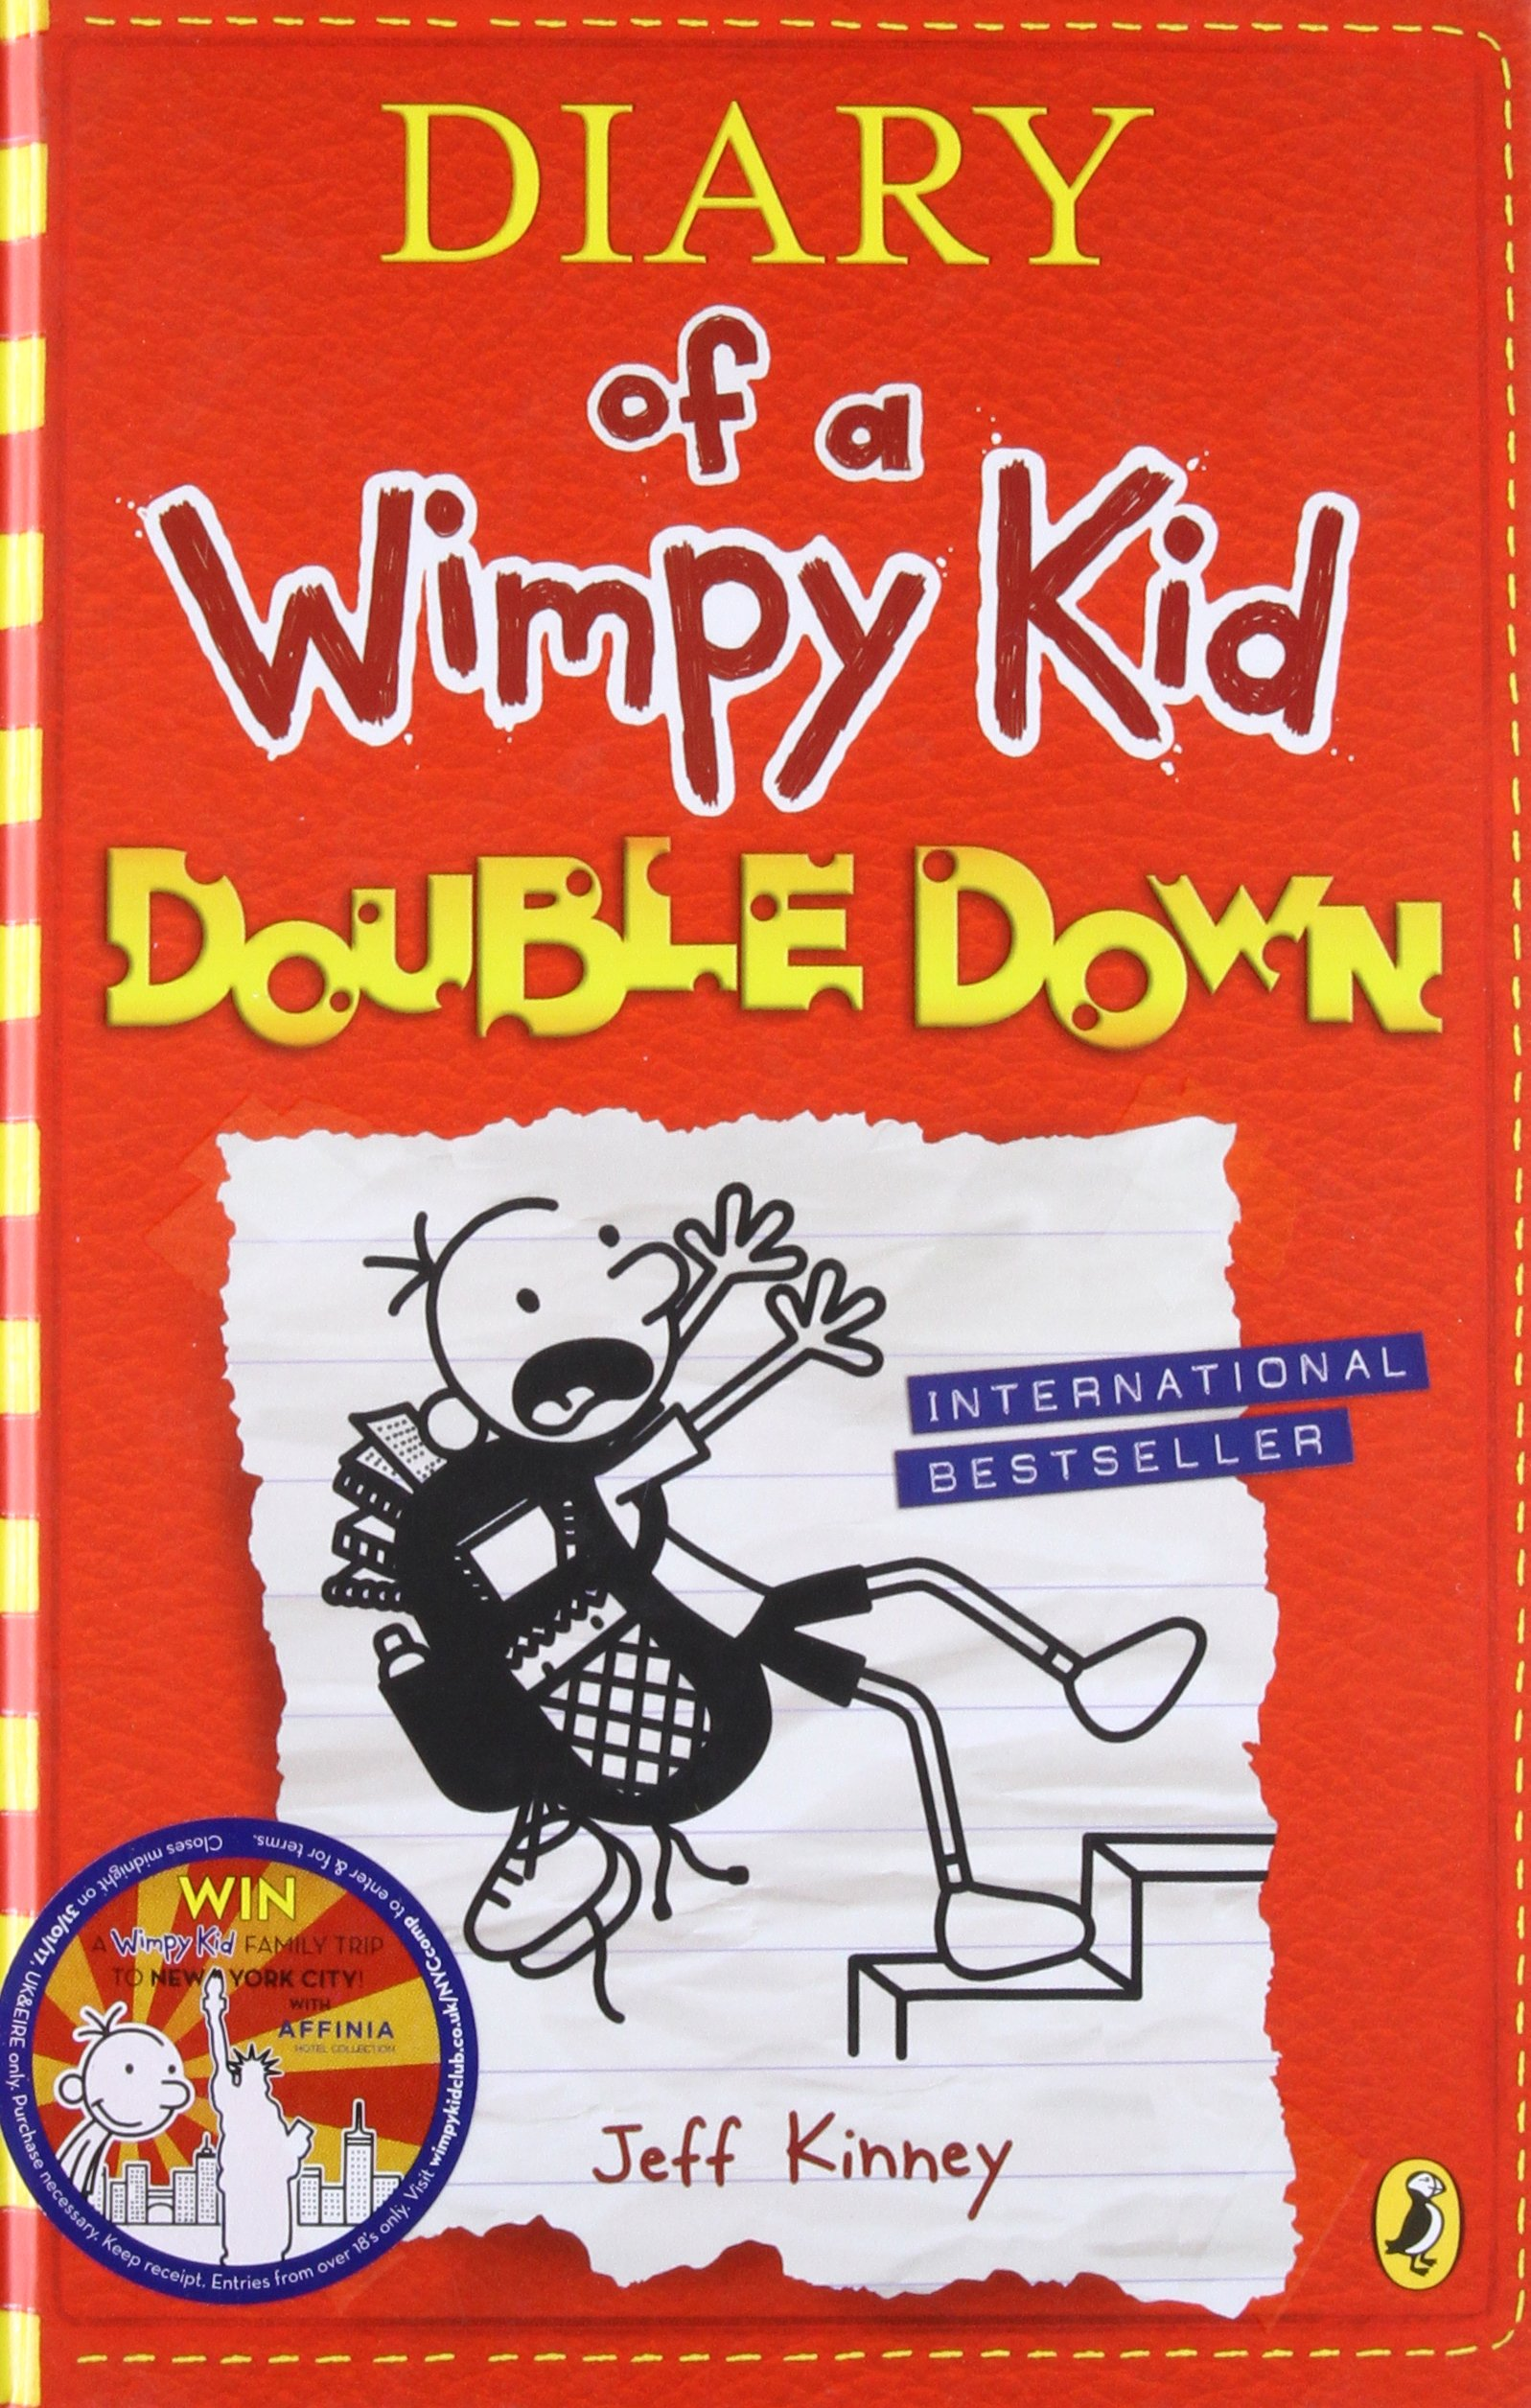 Diary of a wimpy kid double down diary of a wimpy kid book 11 diary of a wimpy kid double down diary of a wimpy kid book 11 amazon jeff kinney 9780141373010 books solutioingenieria Image collections